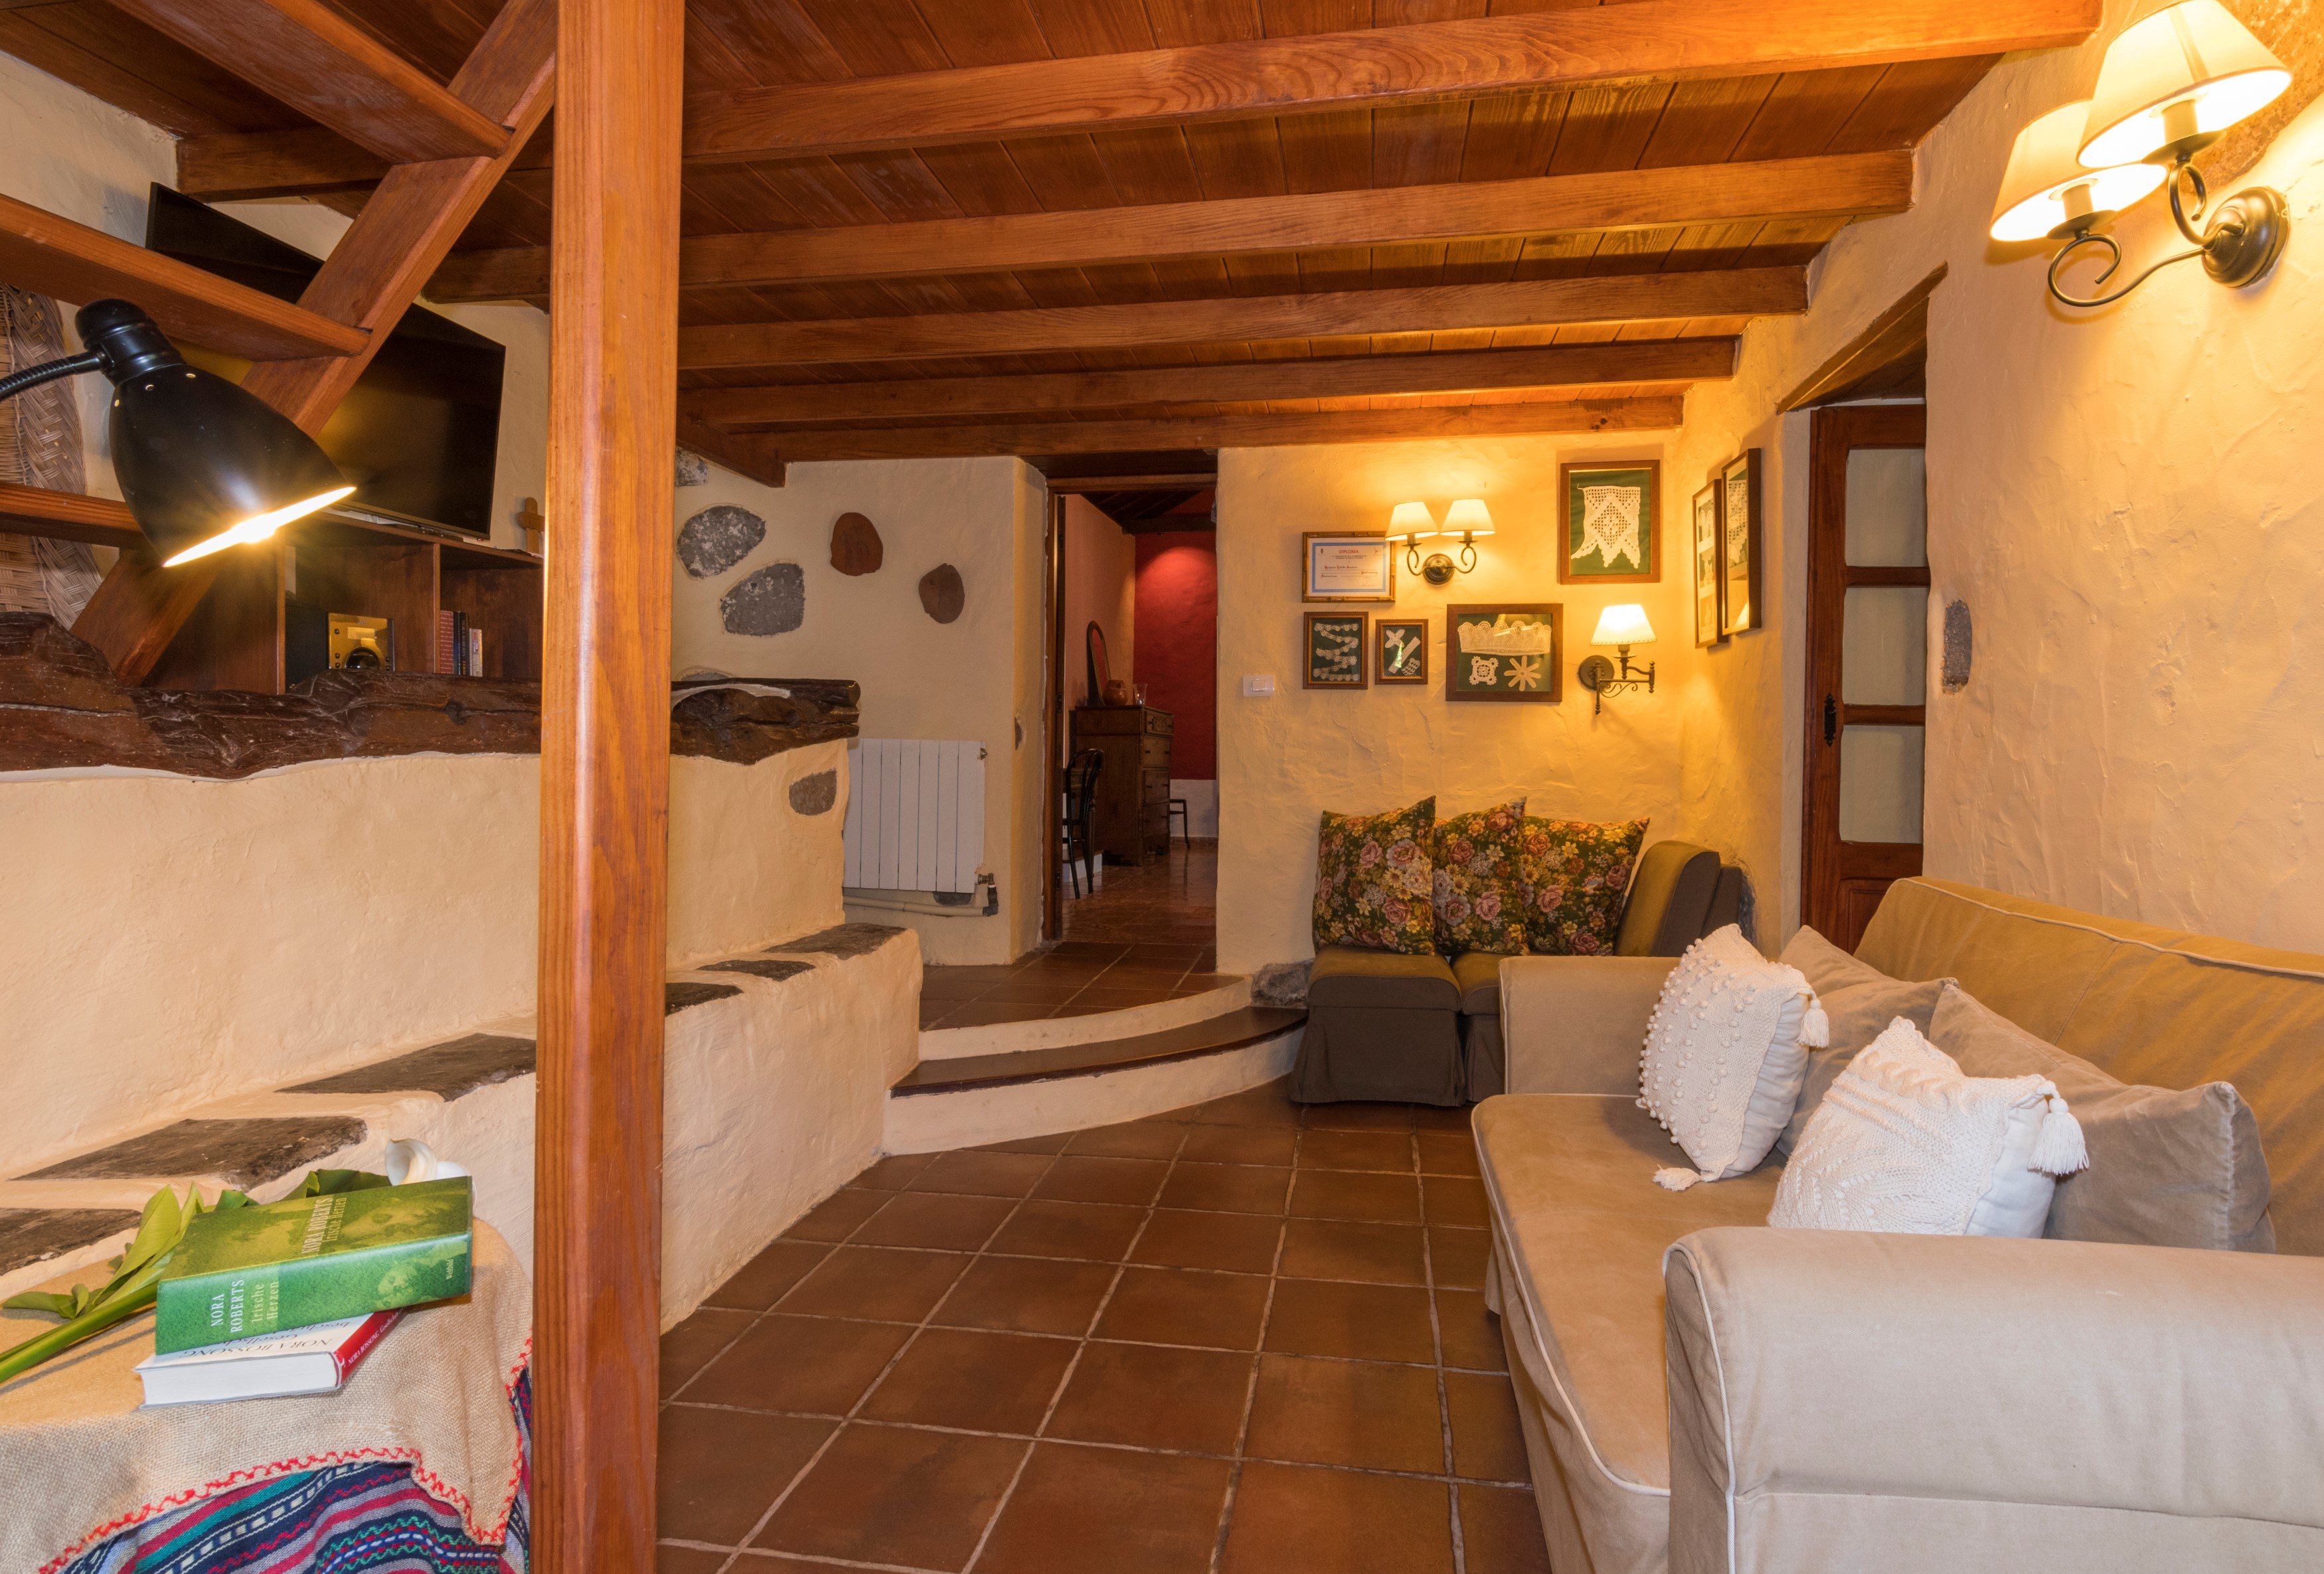 Maison de vacances House - 2 Bedrooms with Pool and WiFi - 106781 (2742990), San Fernando, Grande Canarie, Iles Canaries, Espagne, image 3